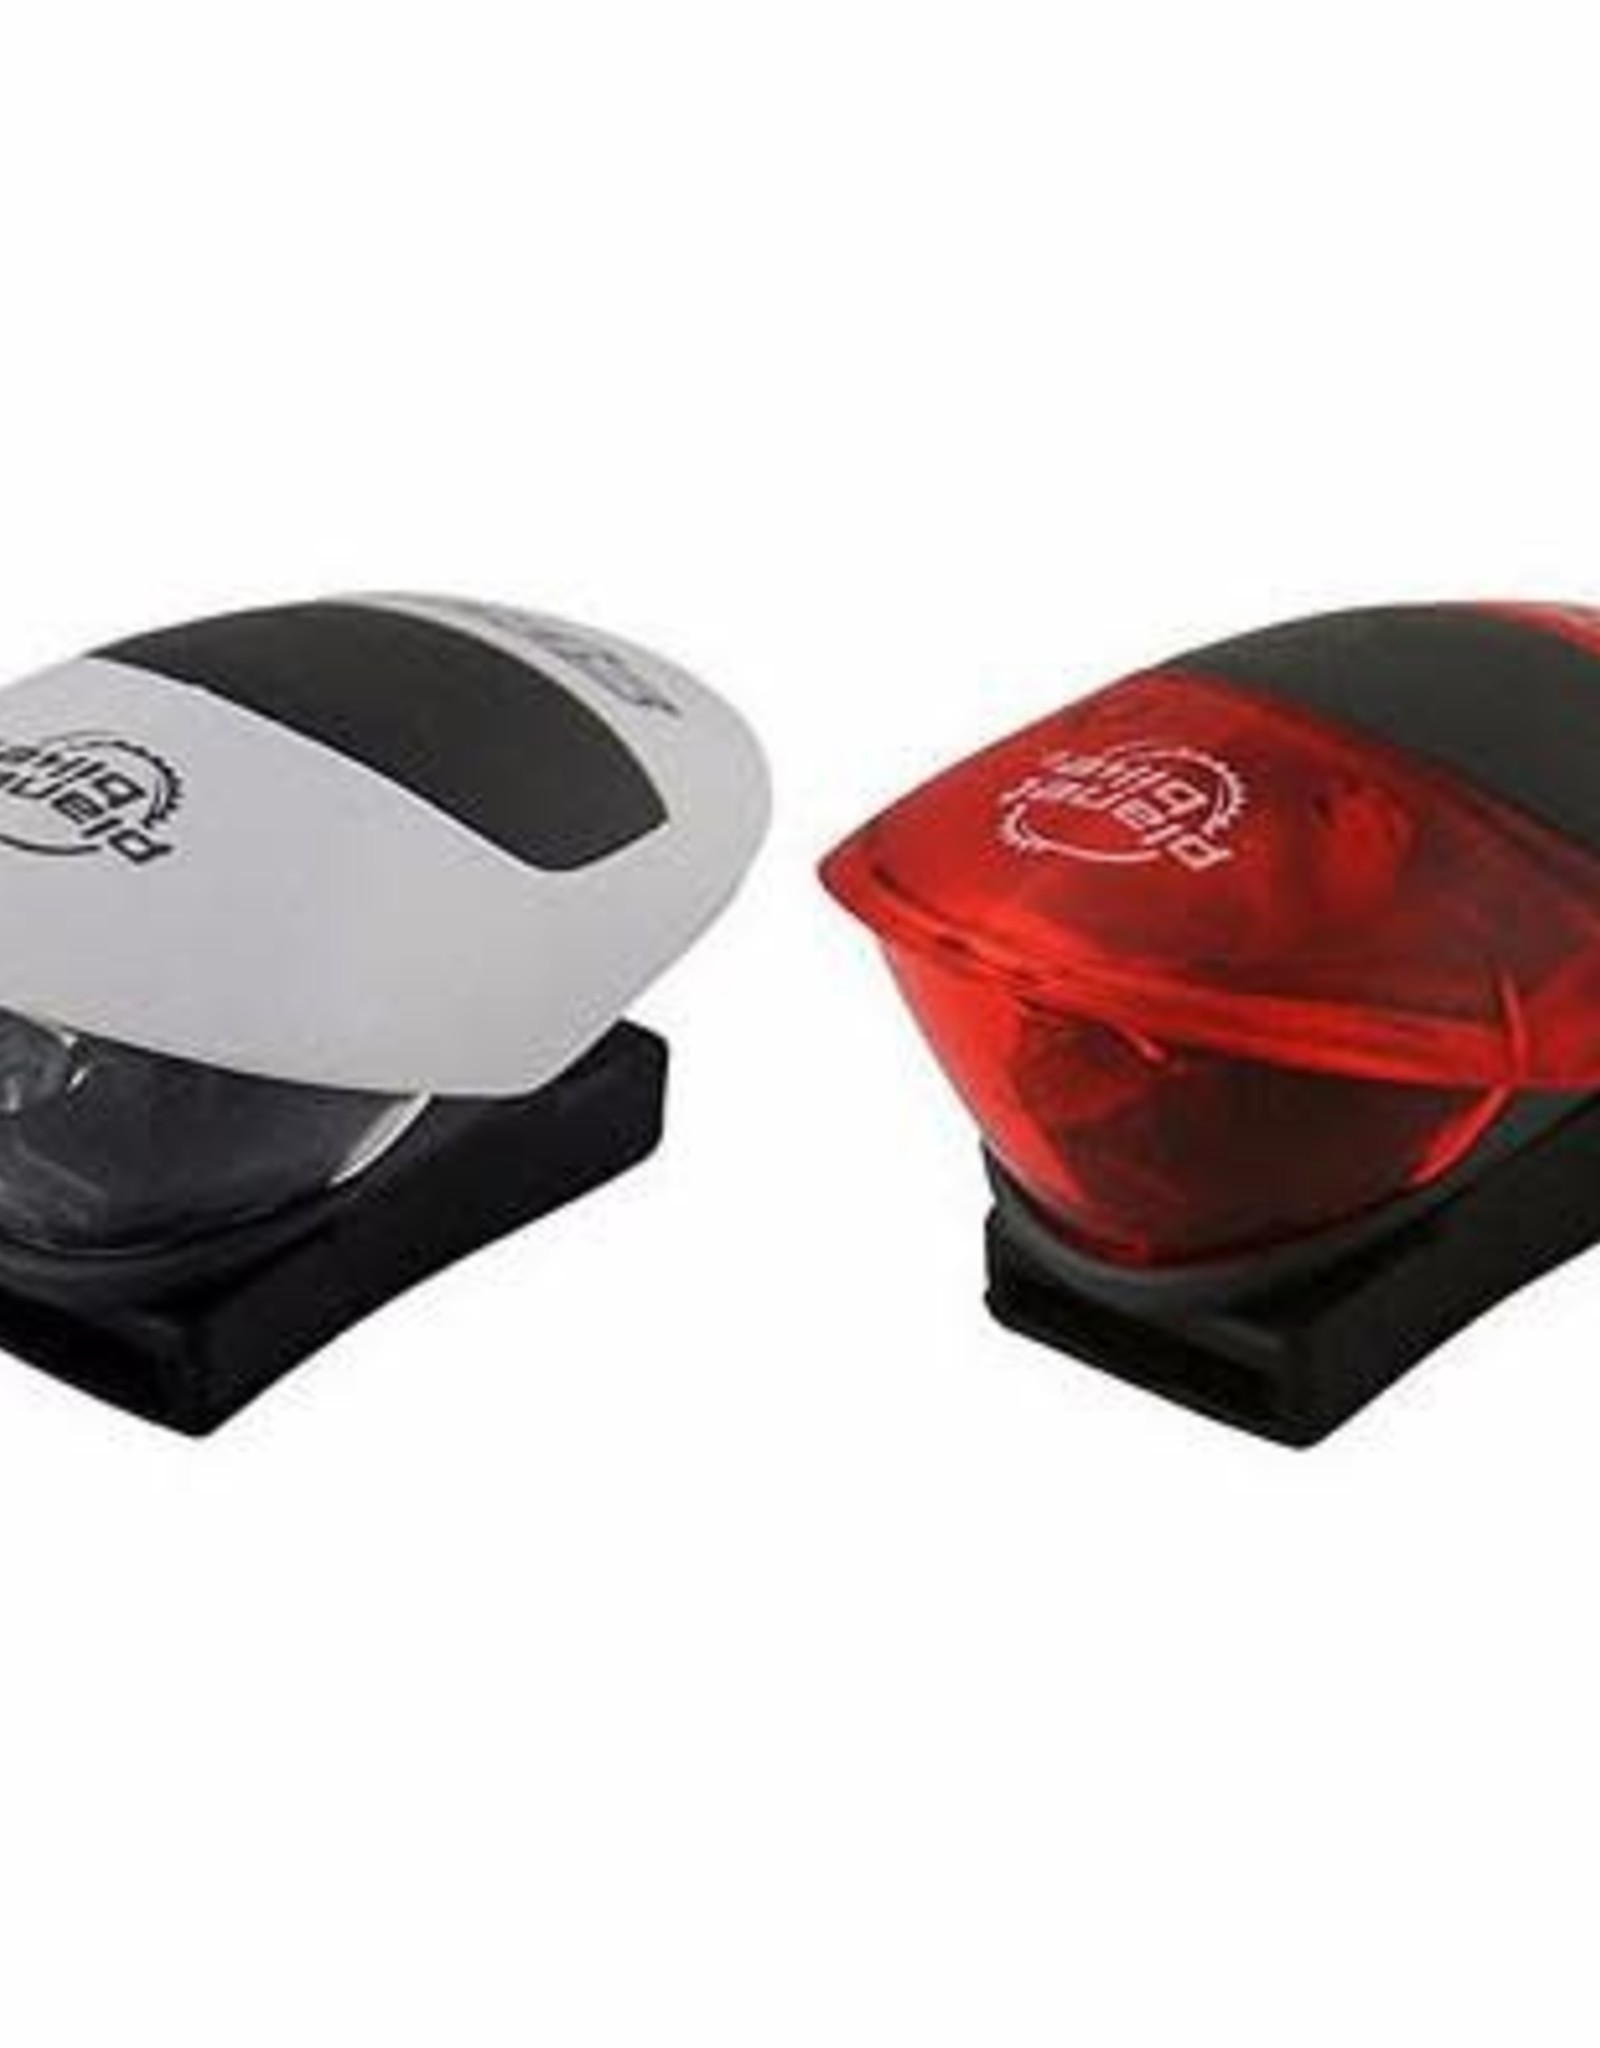 Planet Bike Planet Bike Spok Headlight and Taillight Set